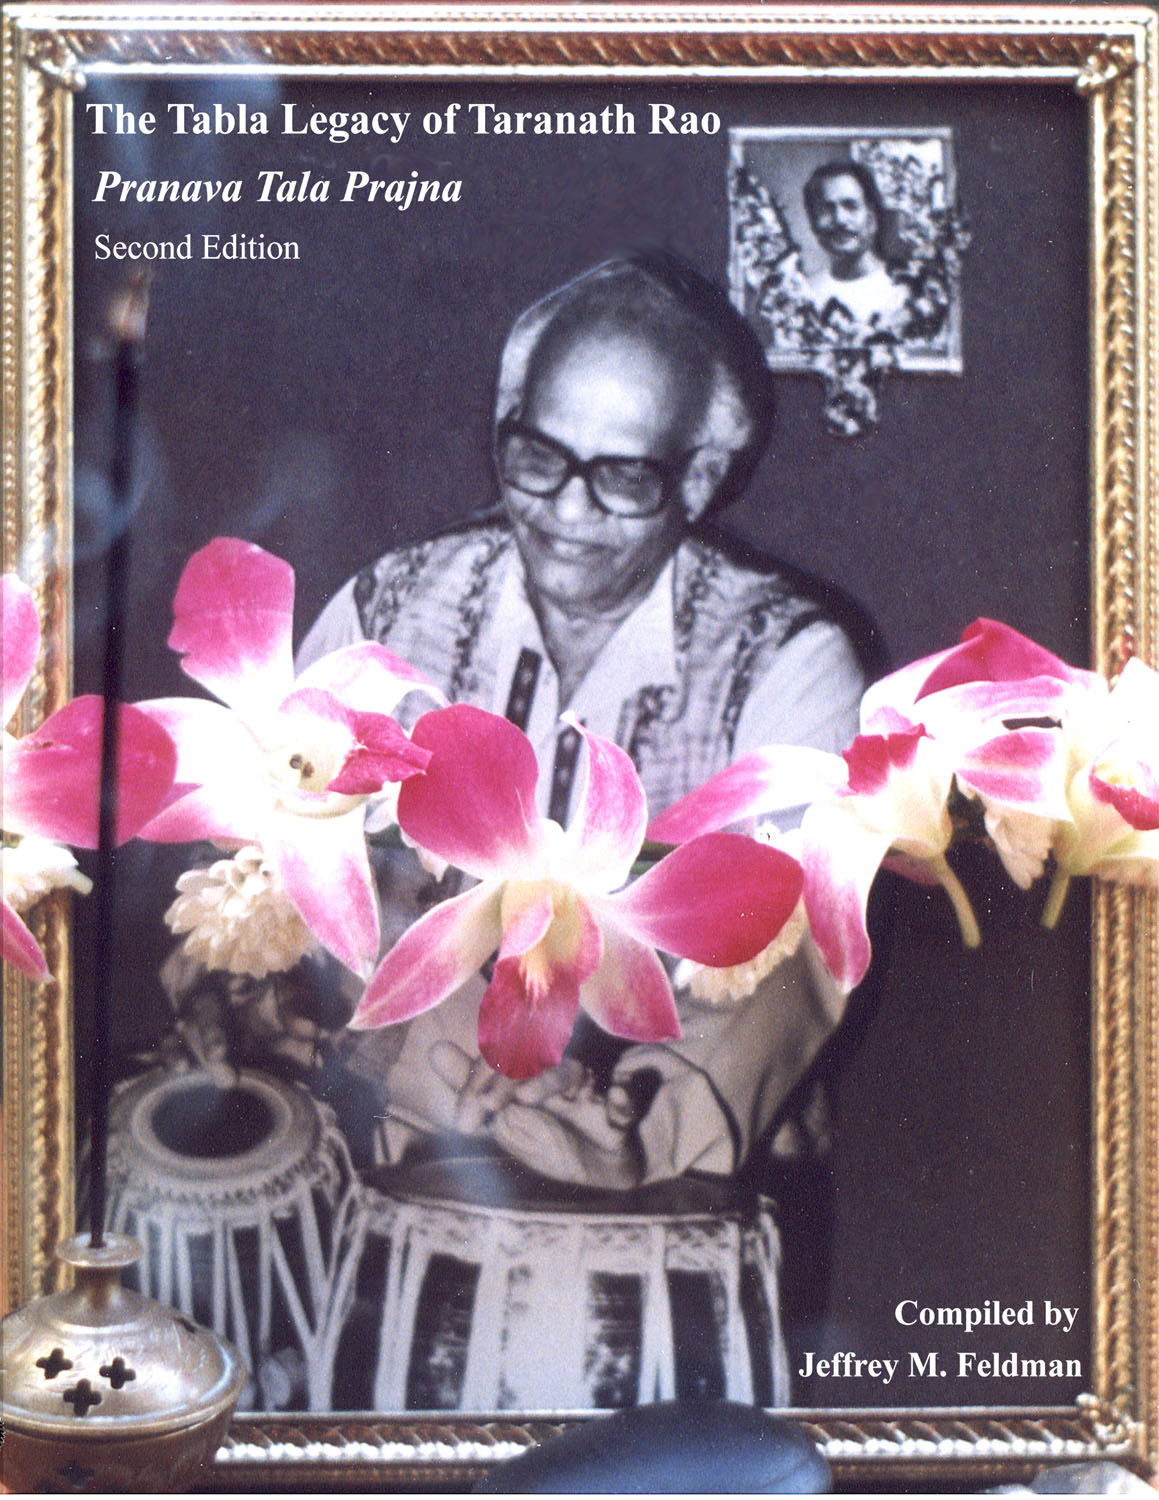 The Tabla Legacy of Taranath Rao  is a comprehensive overview of the art of tabla, adopted from the manuscript of the longtime performer and teacher in India and at the California Institute of the Arts. Purchase includes  free access to online videos  performed by Pt. Sadanand Naimpalli, a senior disciple and of India's most respected tabla virtuosos.    -more-